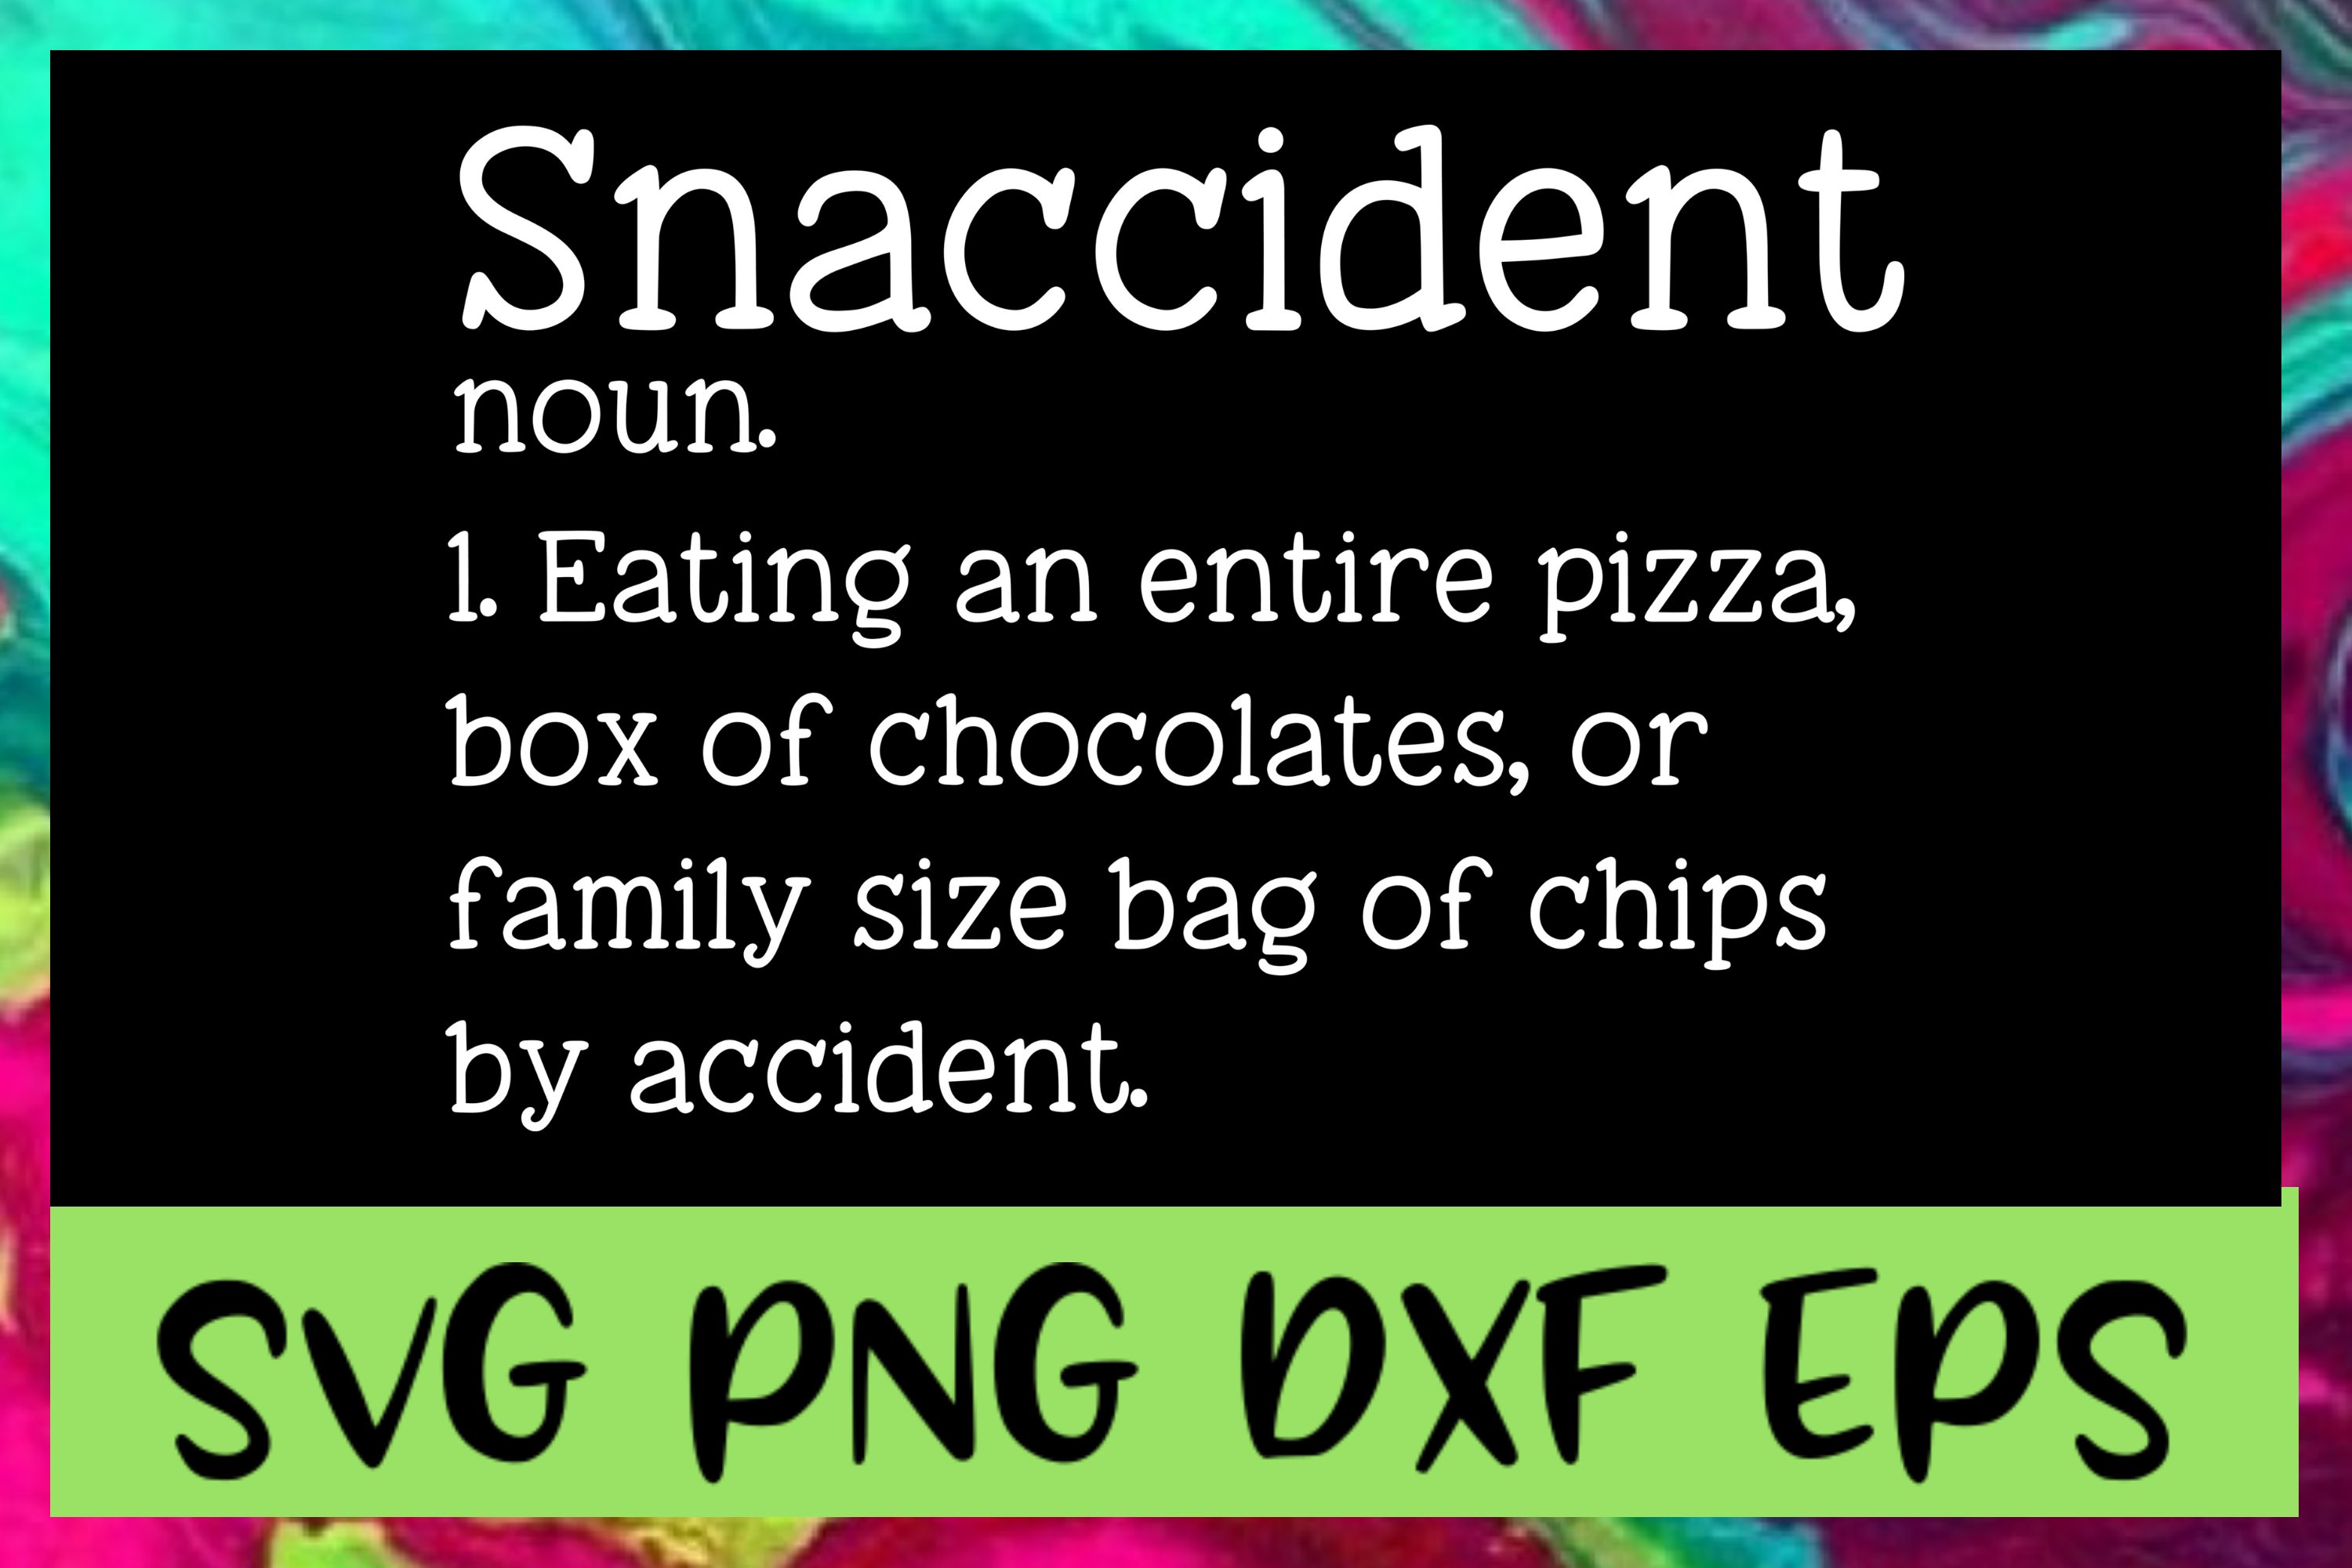 Snaccident Definition SVG PNG DXF & EPS Design Files example image 1